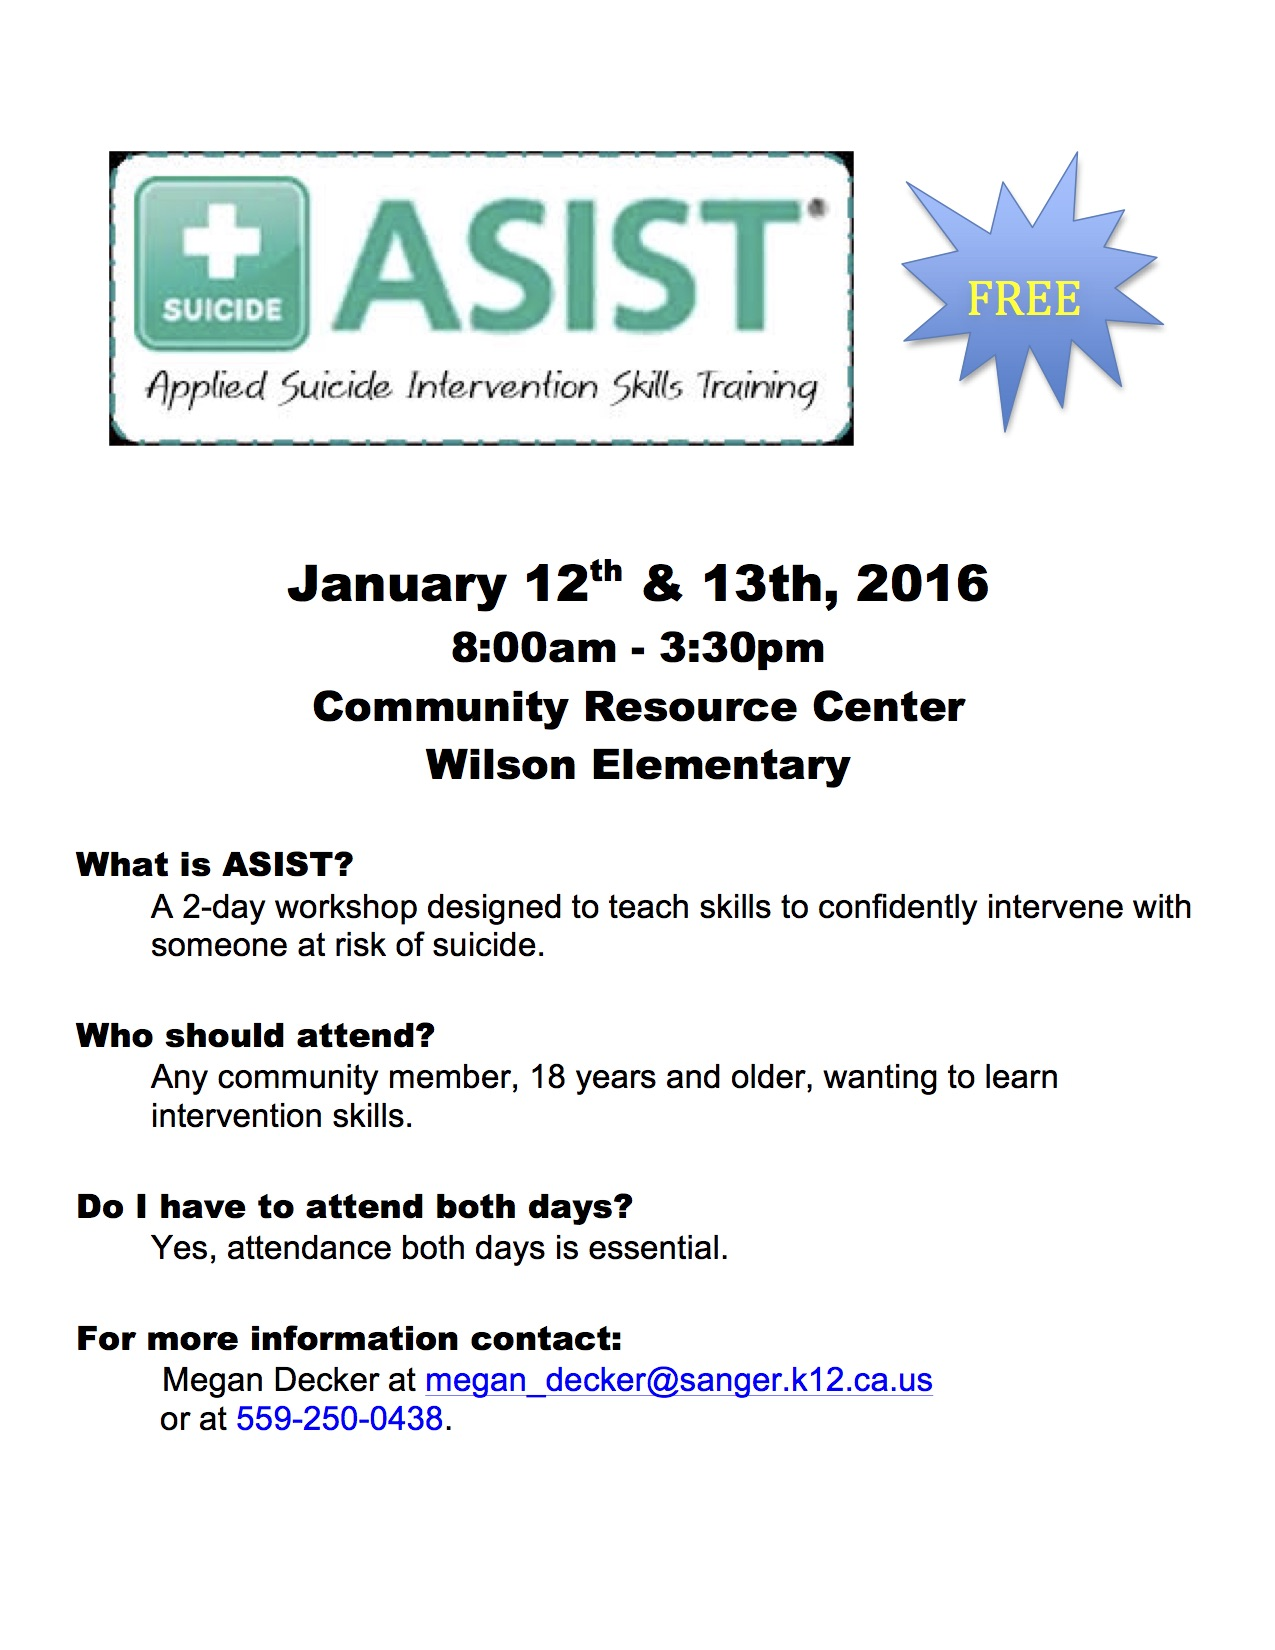 asist applied suicide intervention skills training   the